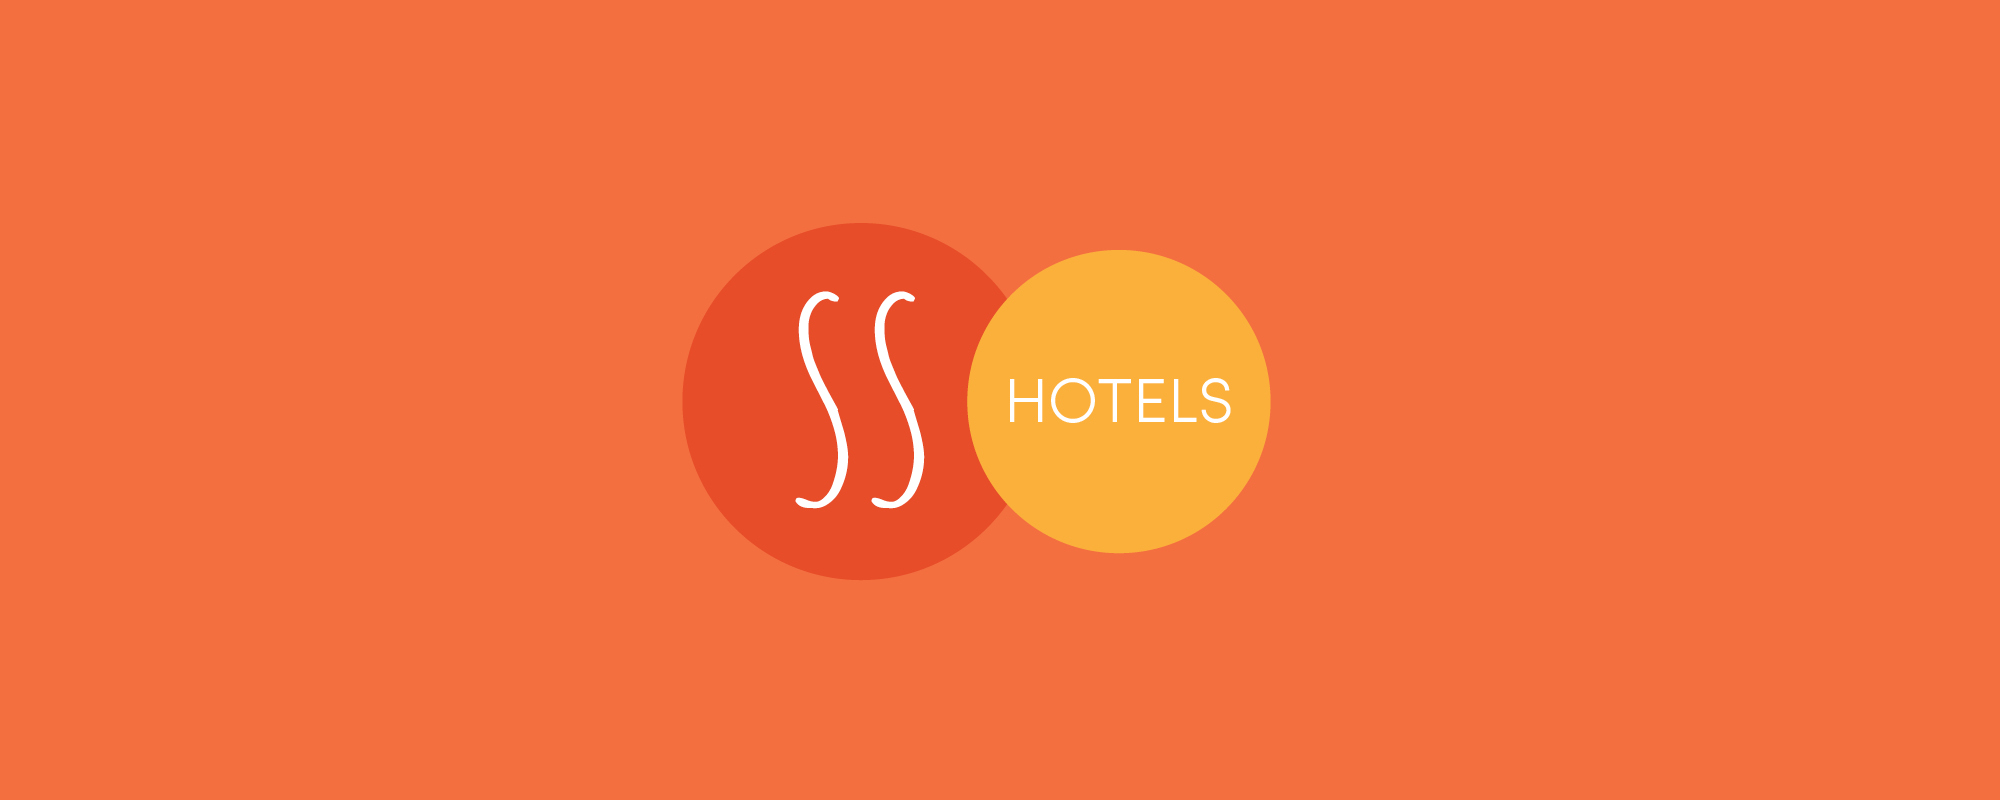 SS Hotels Cover Image.jpg